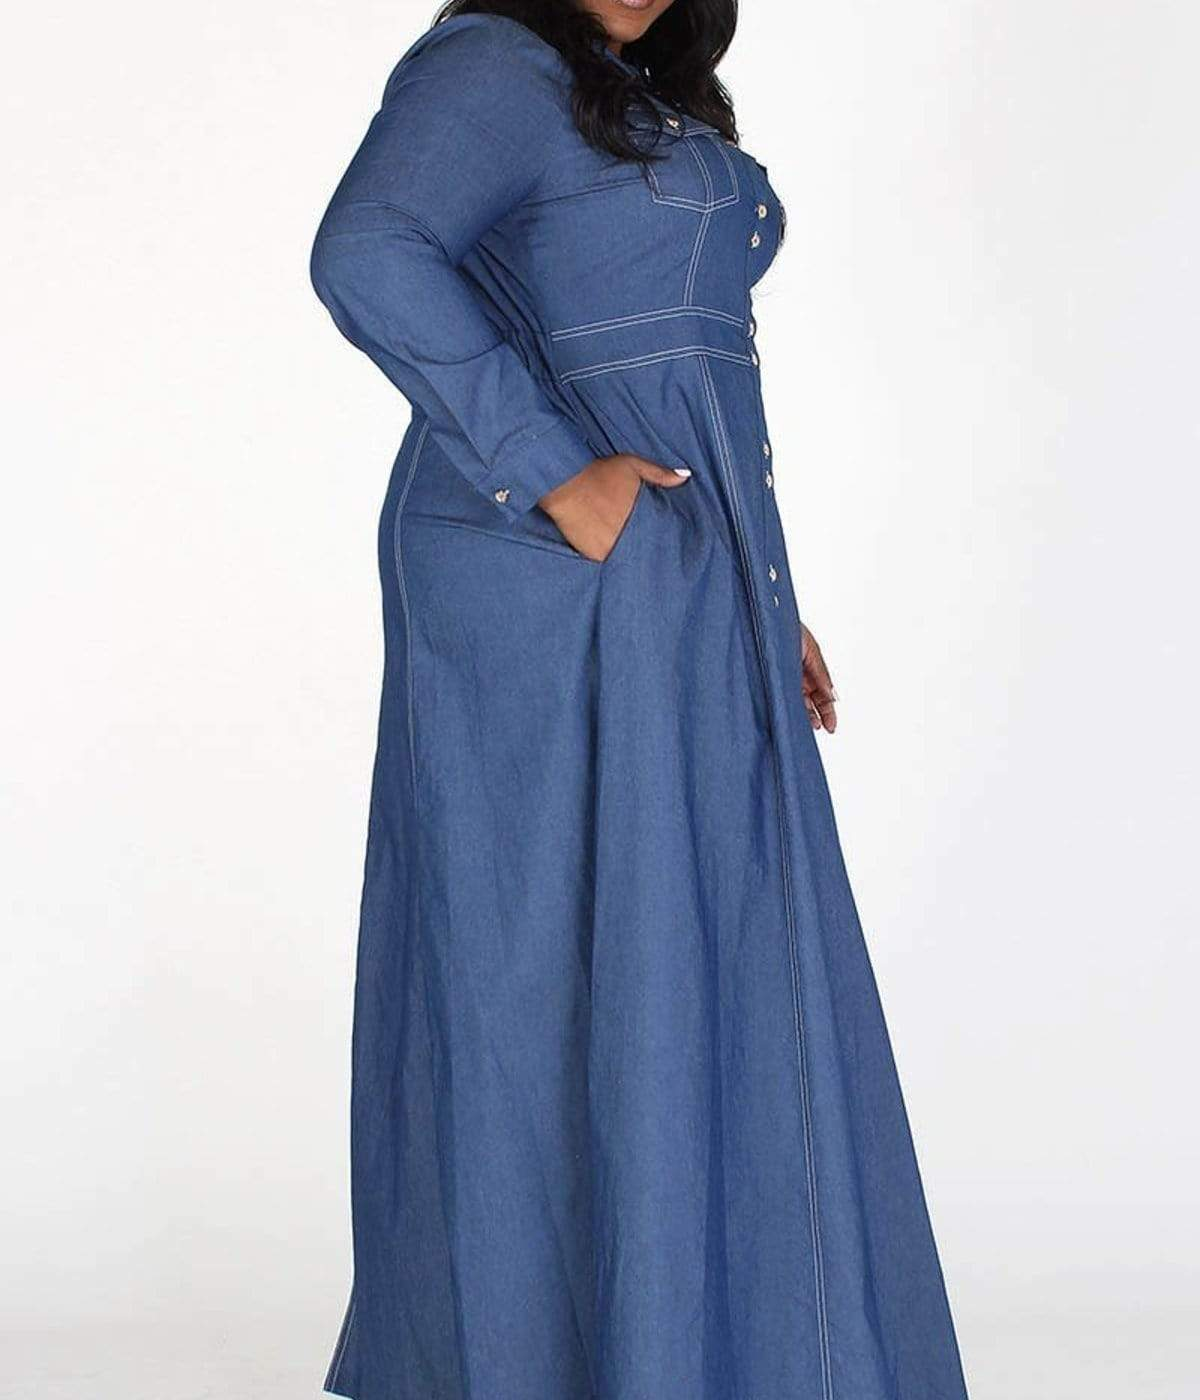 A-line Long Sleeve Denim Maxi Dress-Blue - Posh Shoppe